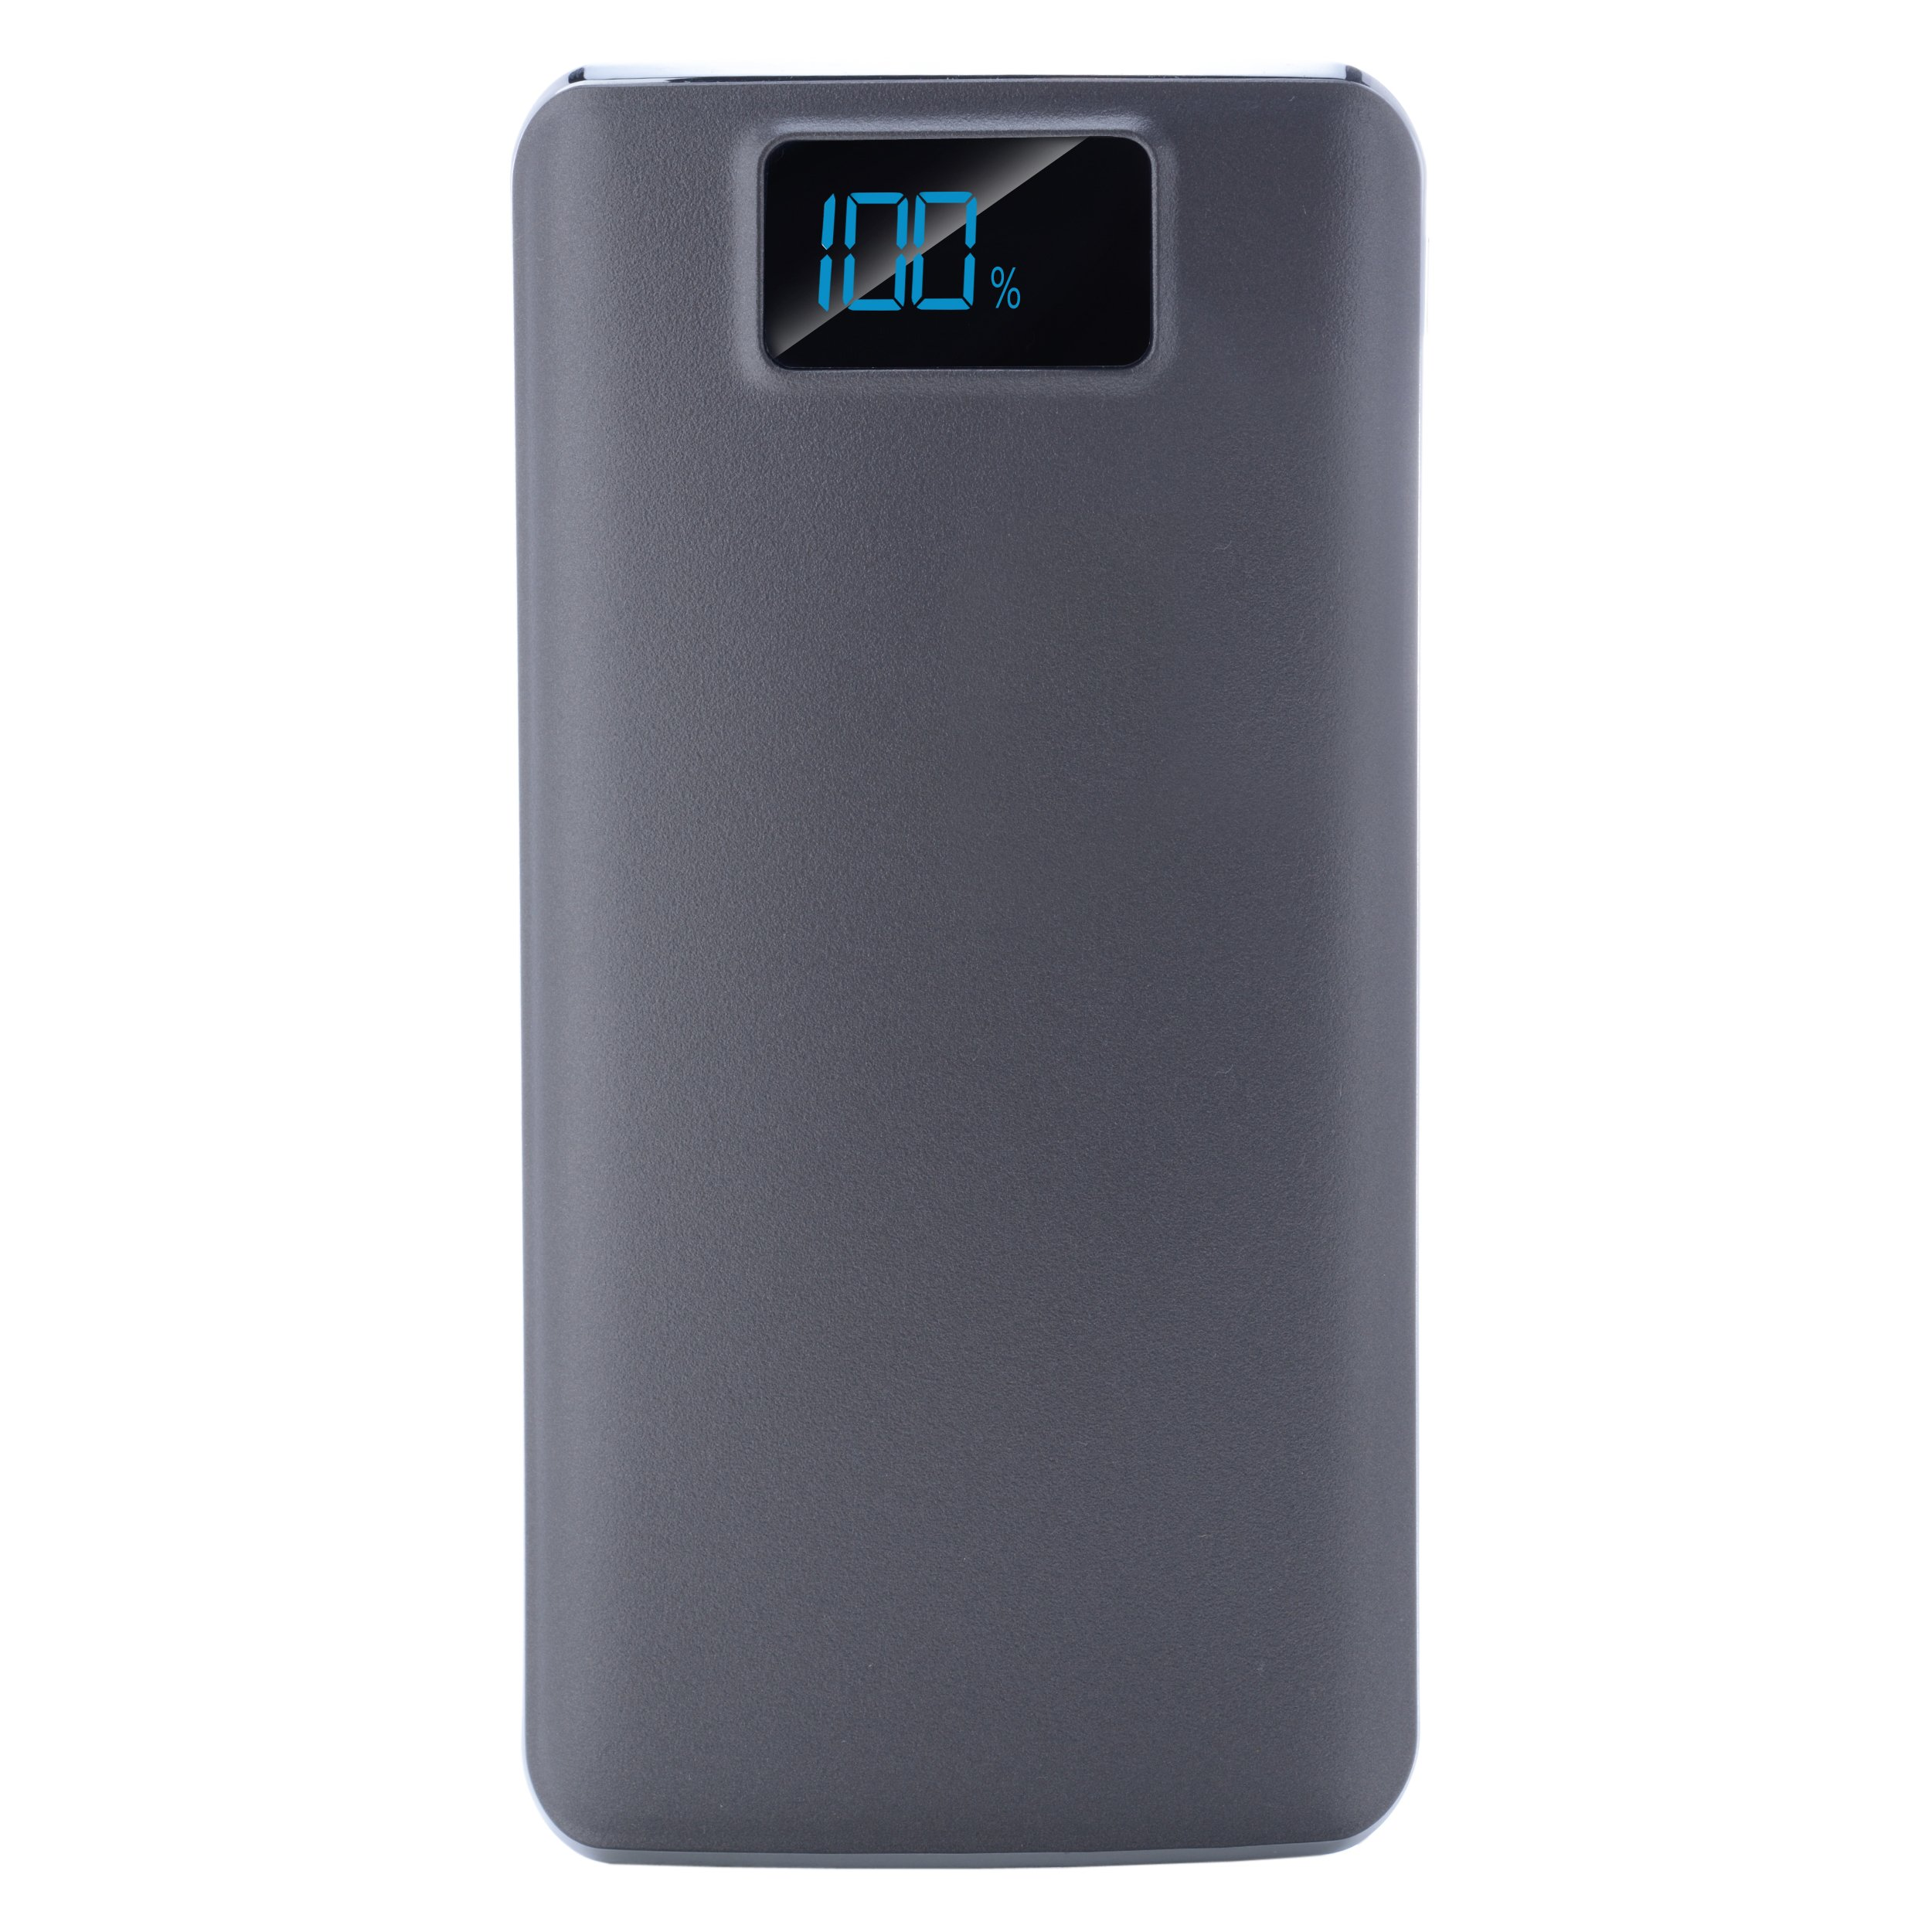 SHAK Shoppe 20800 mAh Portable Charger | Powerbank for iPhone, iPad, Samsung Galaxy & Other Android | Fast Charger | High Capacity Power Bank with 5.2A Output | Charges 3 Devices At Once